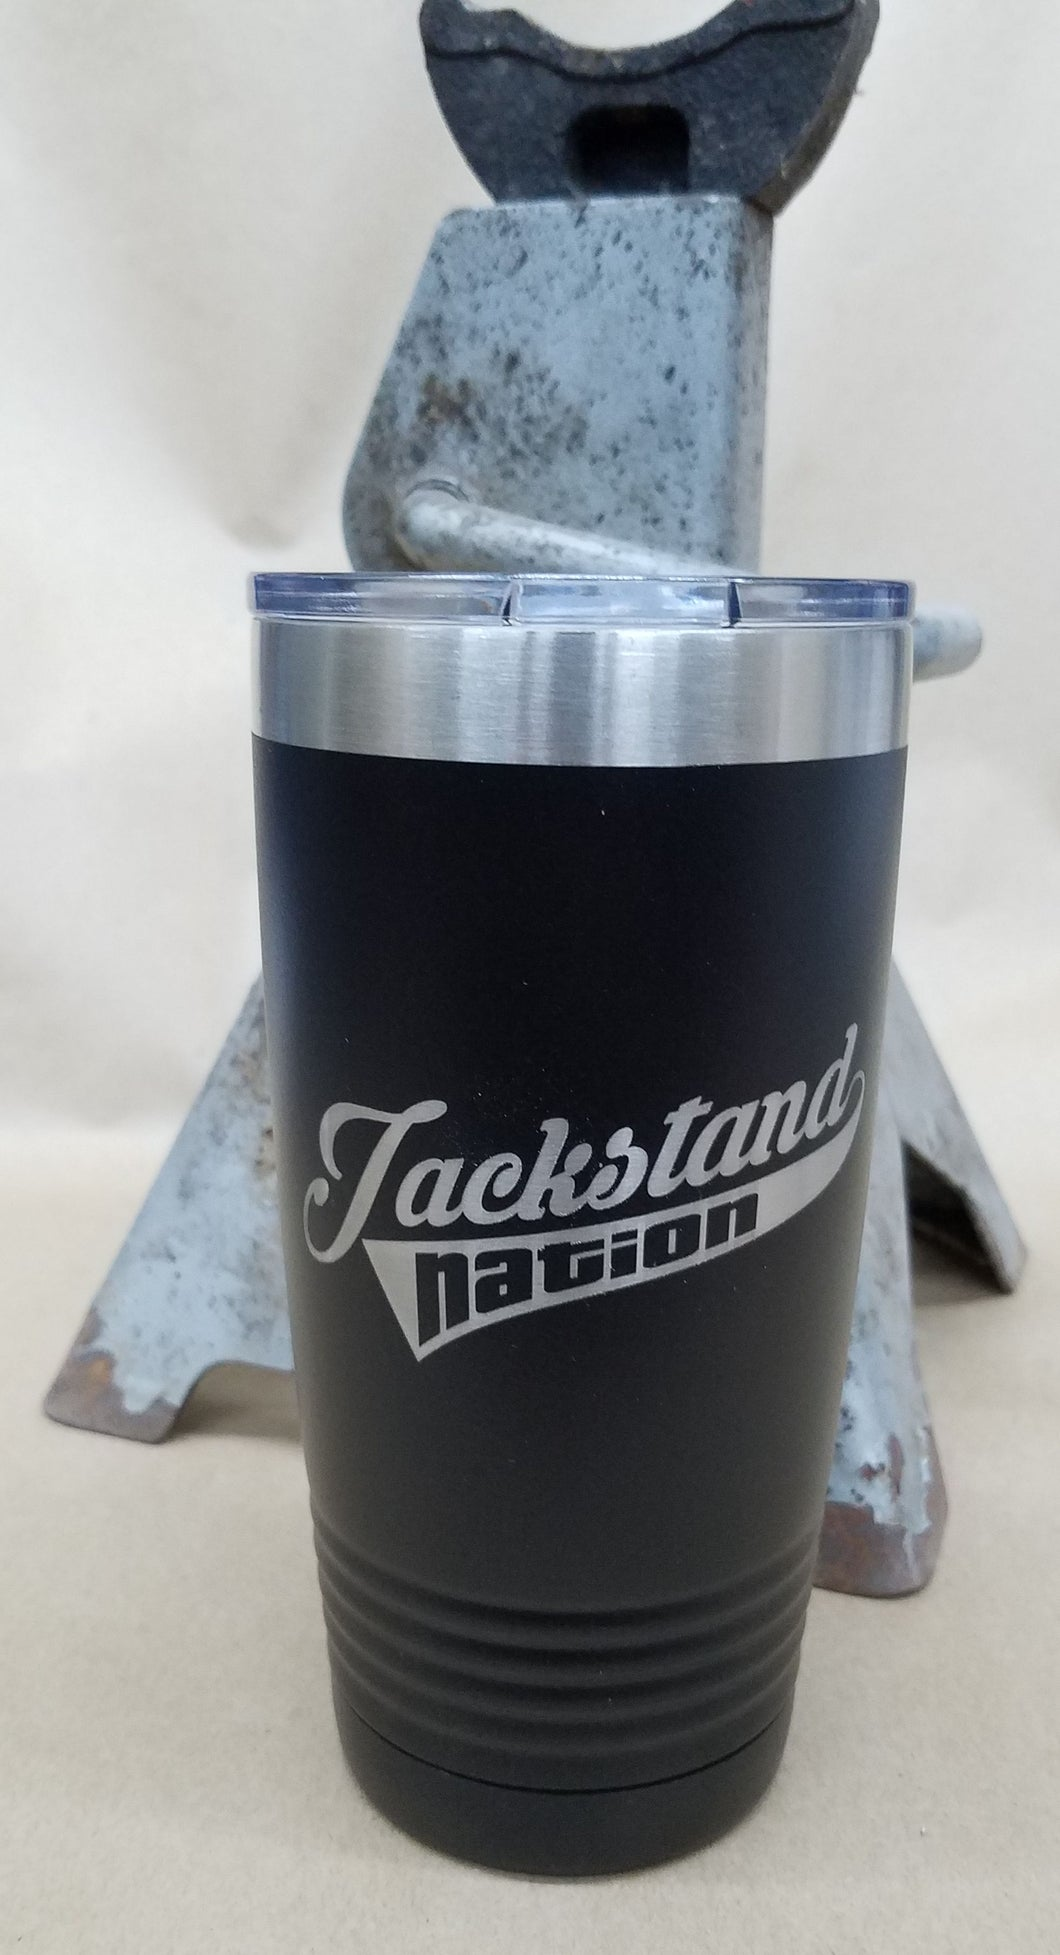 Jackstand Nation 20 oz. Stainless Steel Vacuum Insulated Tumbler